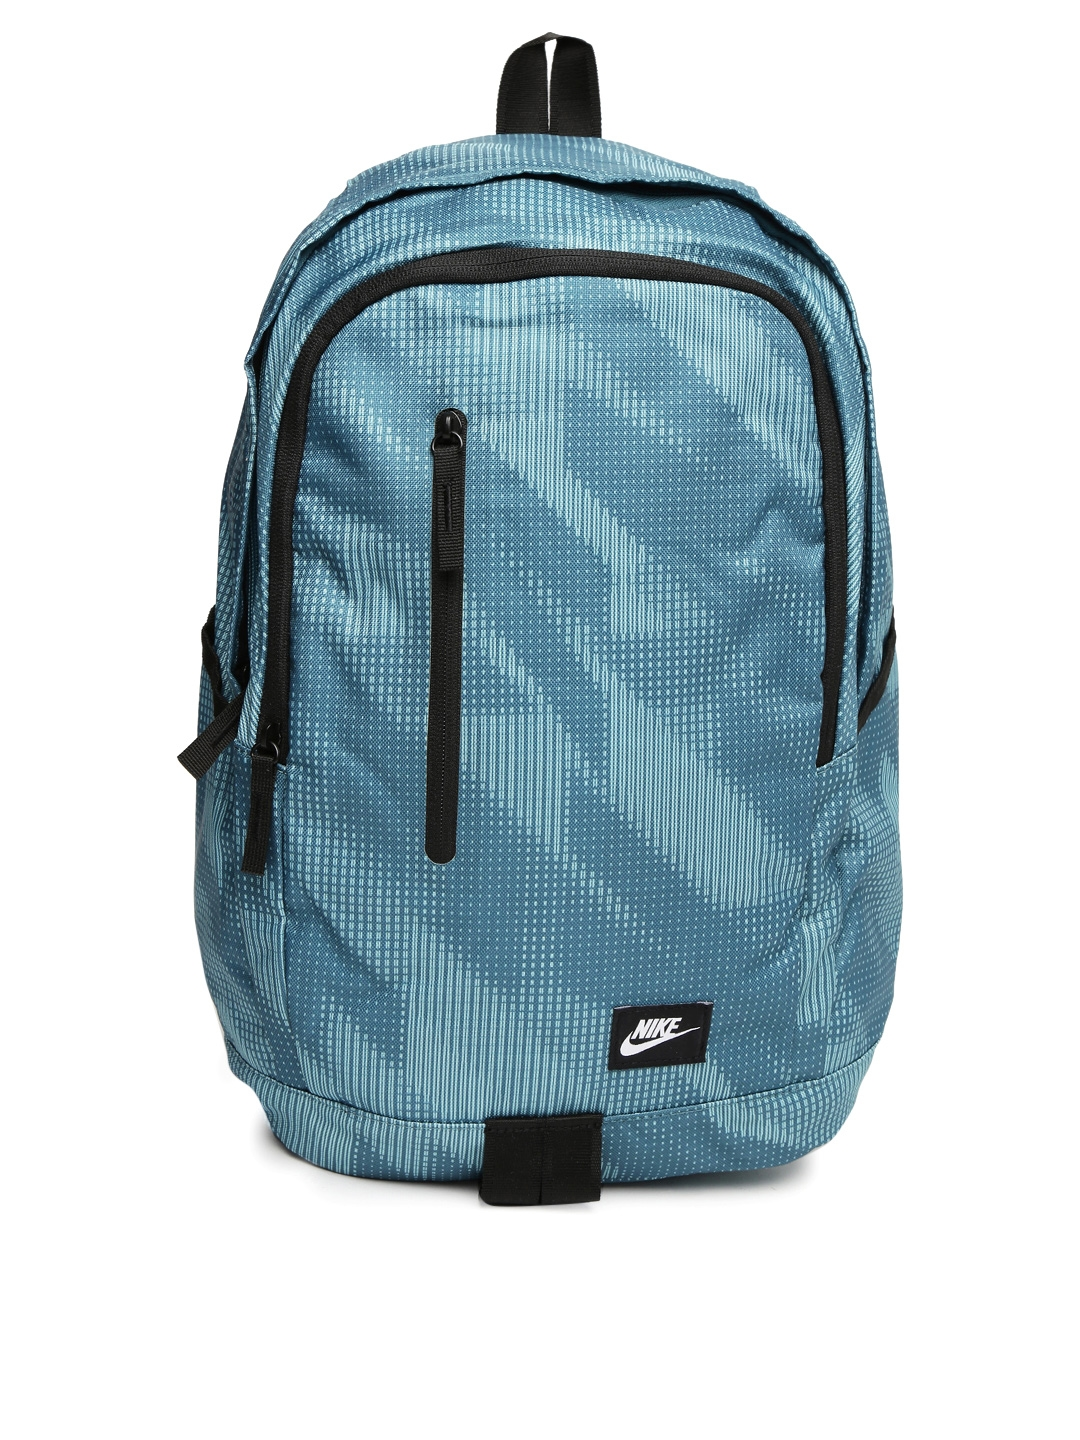 Buy Nike Unisex All Access Soleday Backpack - Backpacks for Unisex ... f169a2964835c